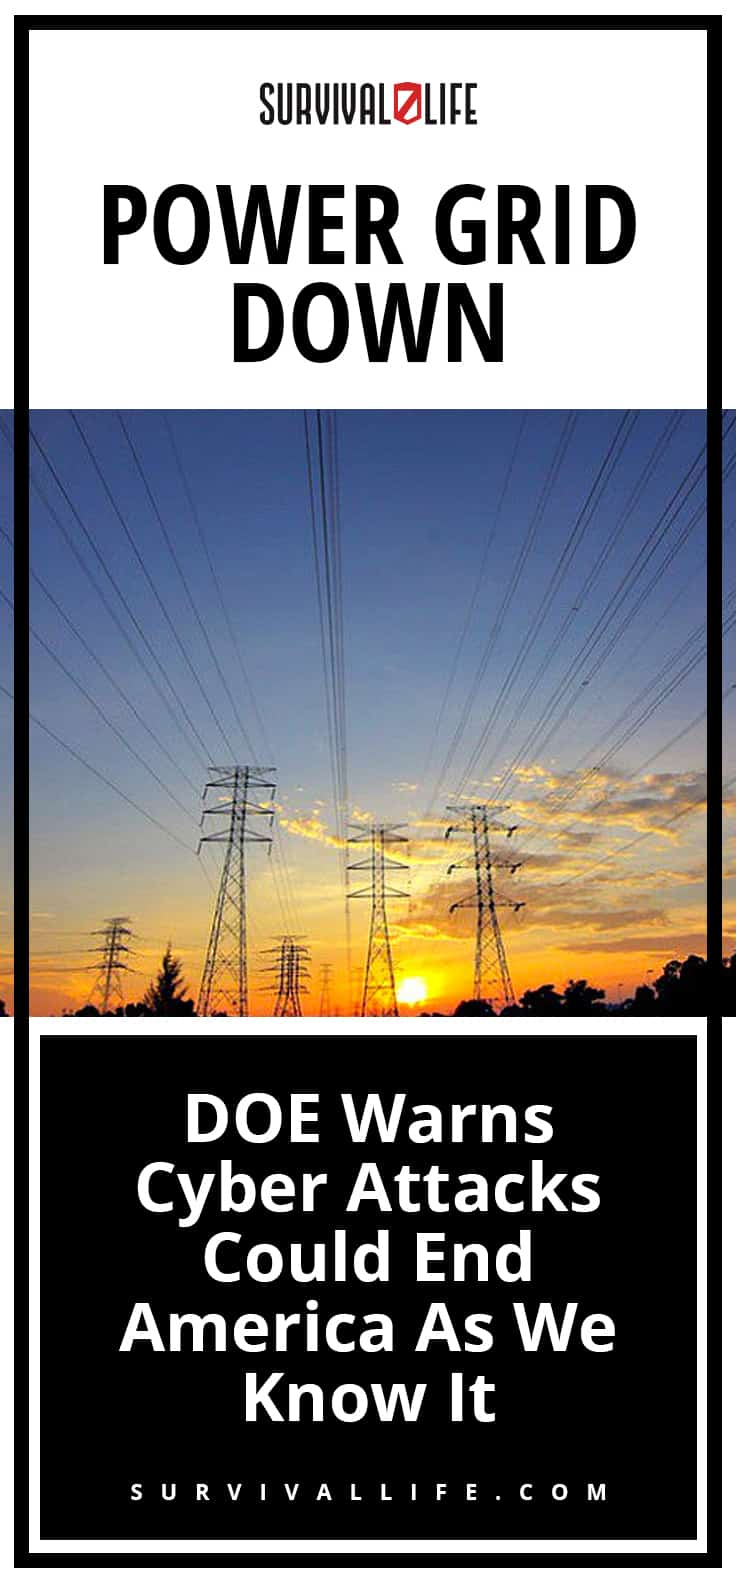 Power Grid Down | DOE Warns Cyber Attacks Could End America As We Know It